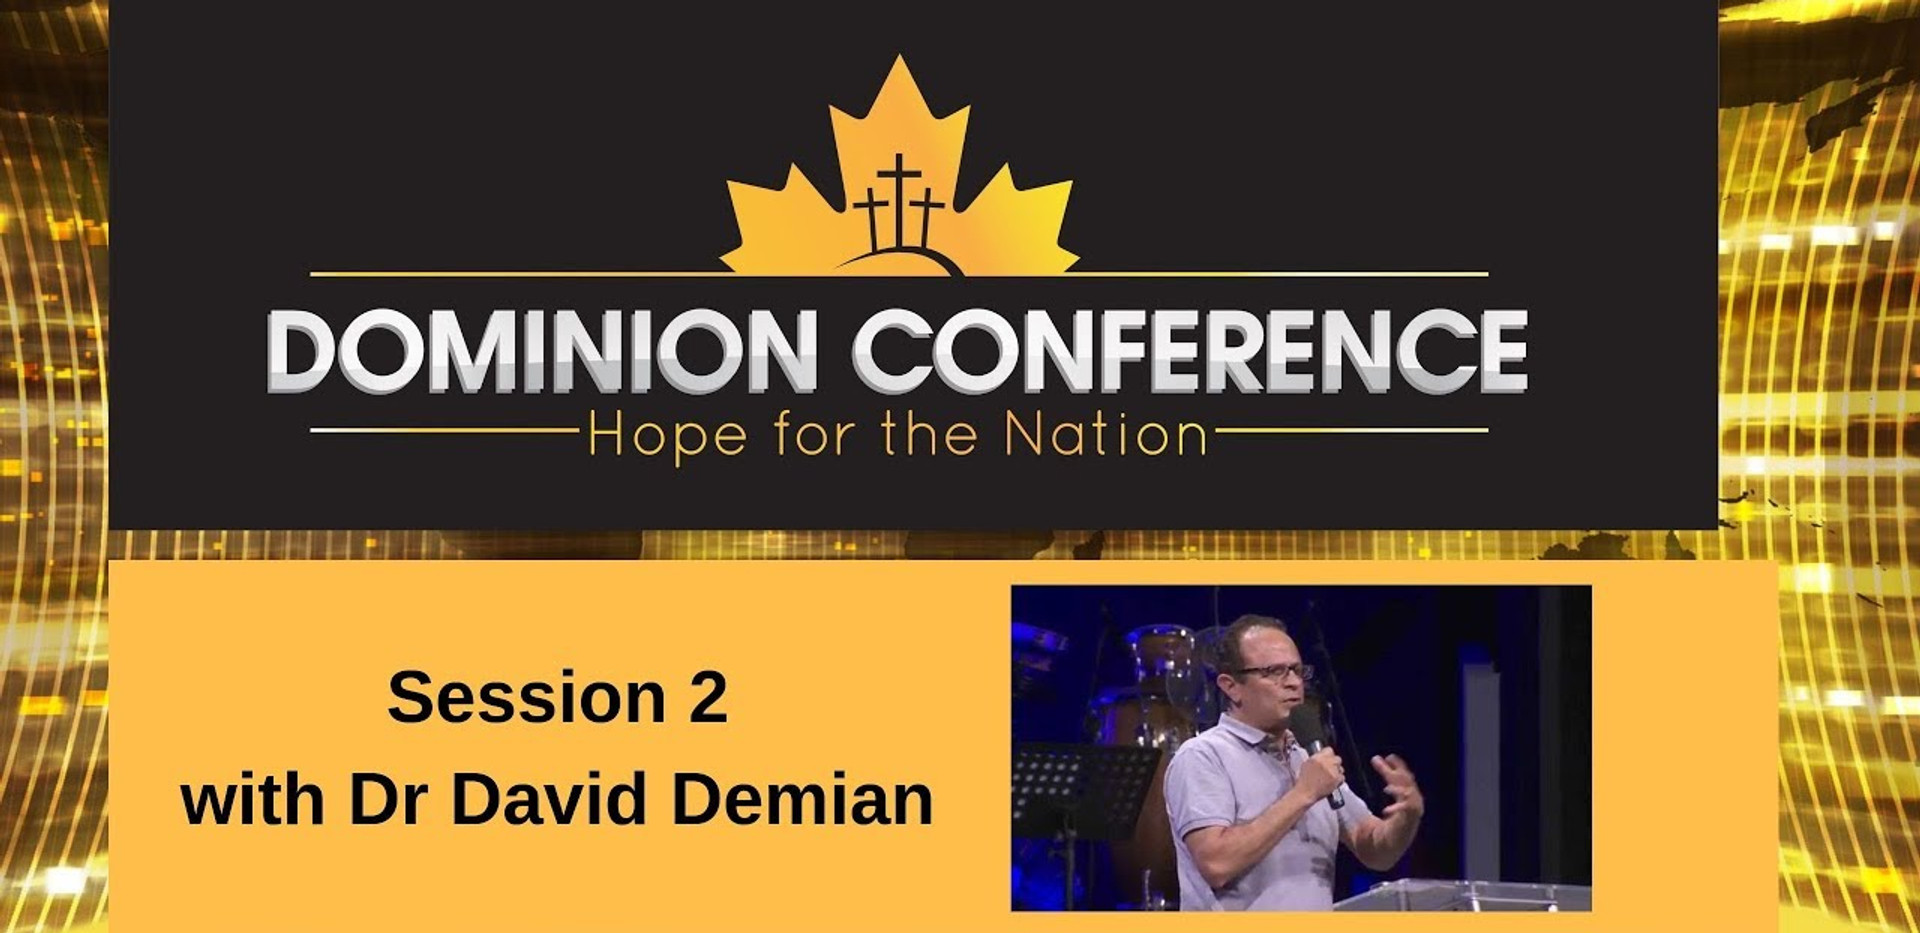 Dominion Conference Lethbridge 2019 | Session Two | Saturday, June 30th 2019 | David Demian